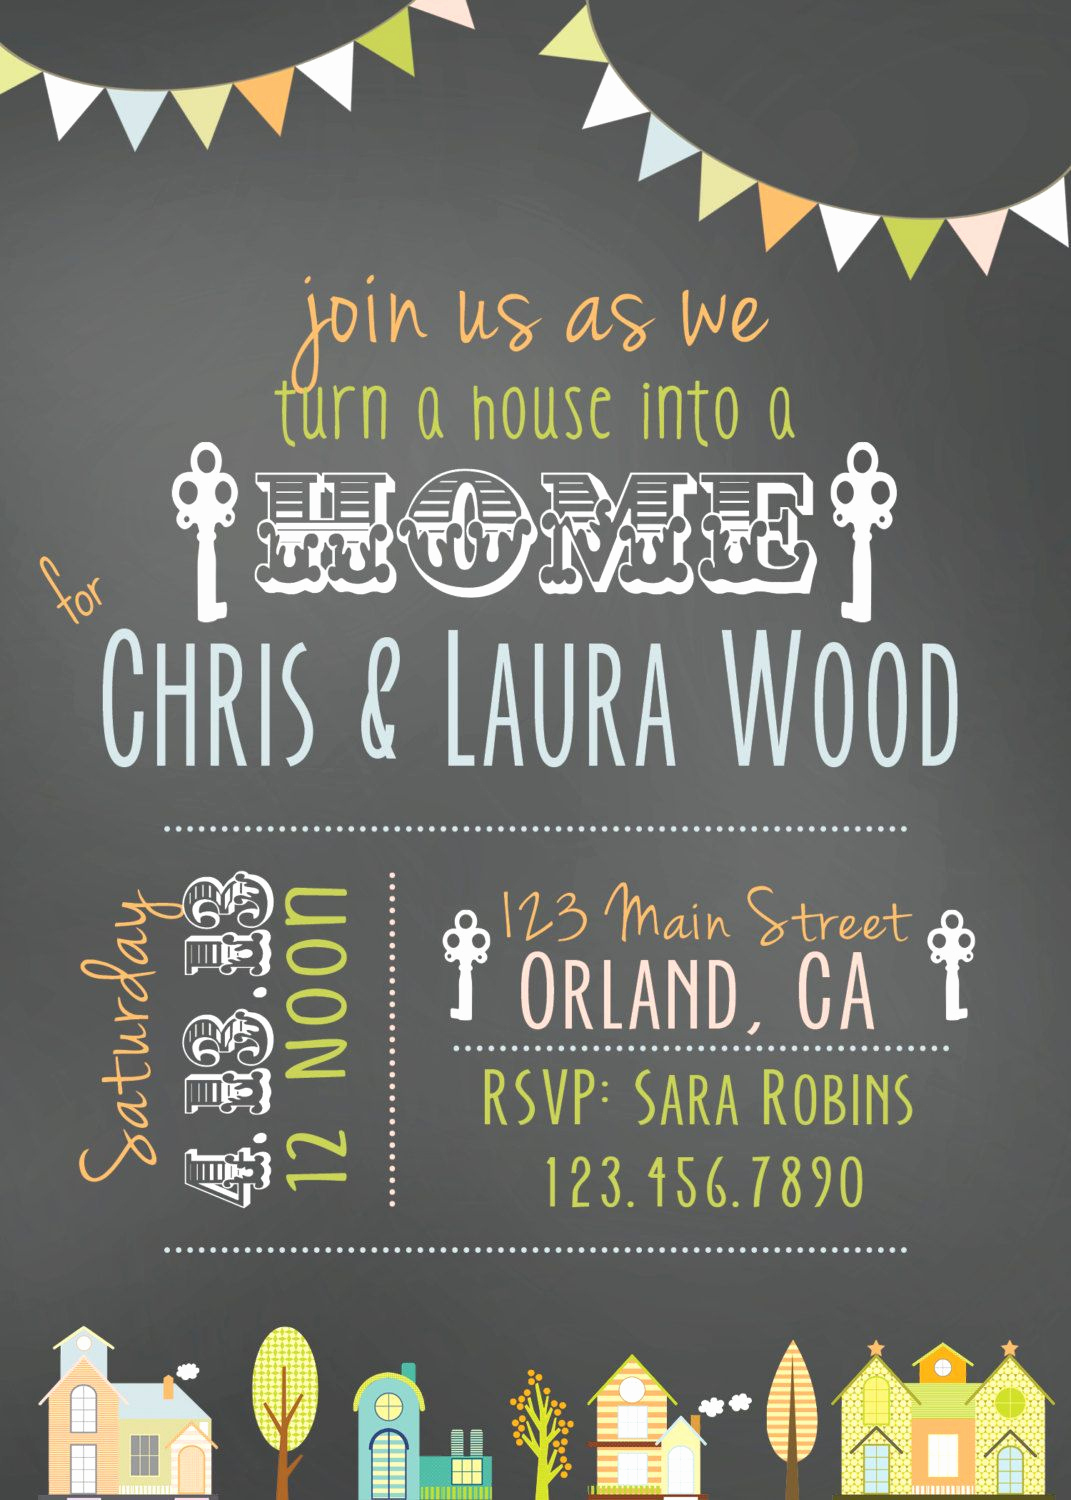 Housewarming Images for Invitation New House Warming Party Invitation $12 00 Via Etsy Repinned